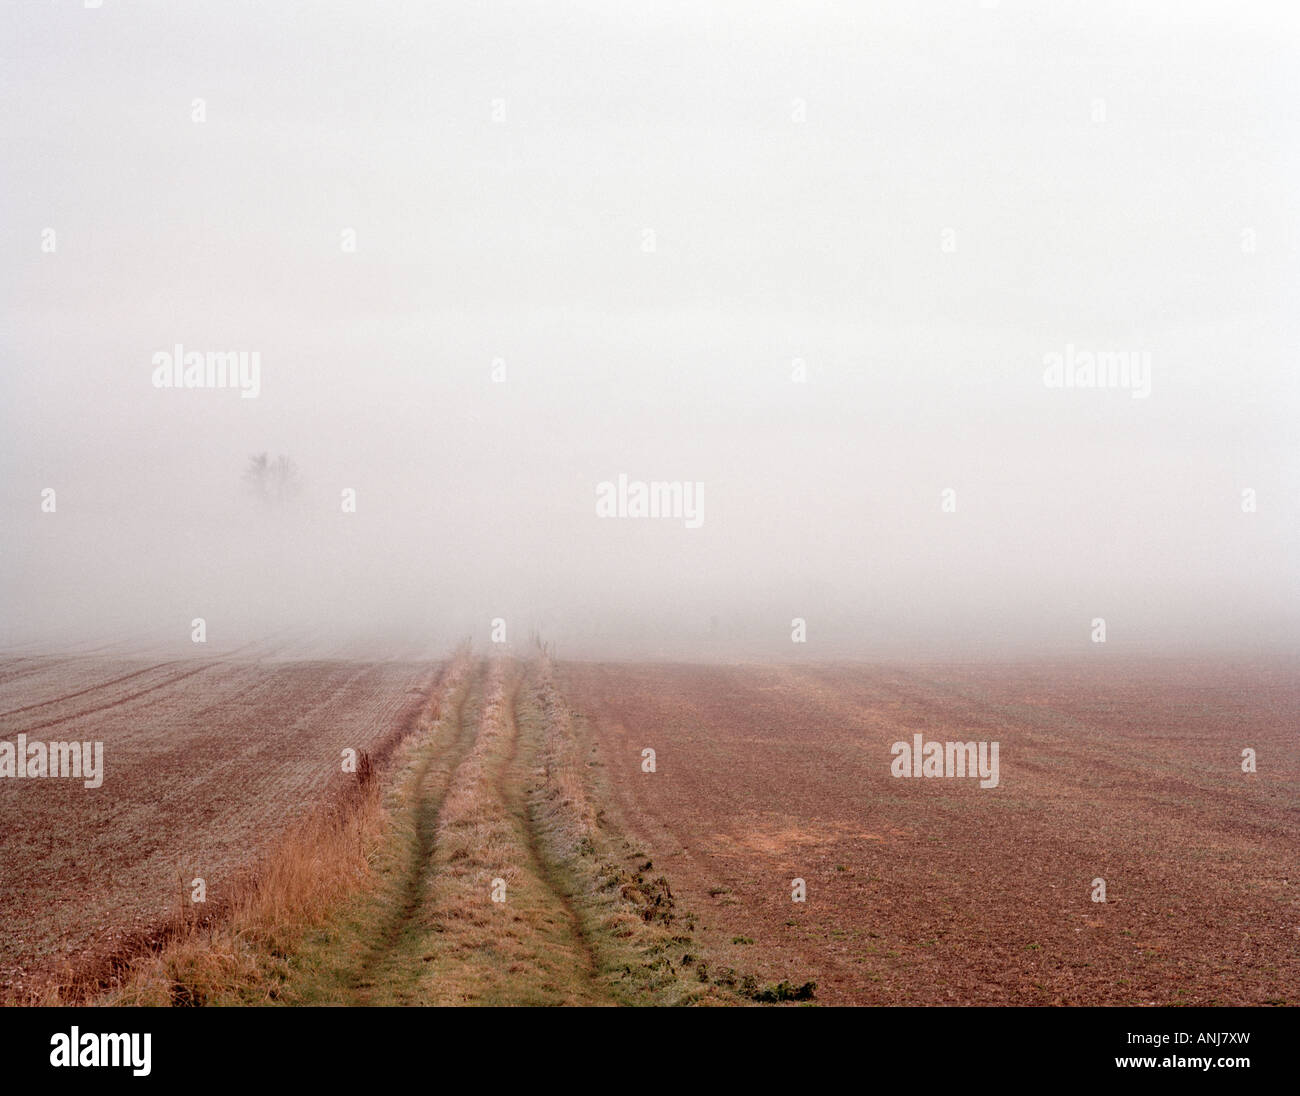 Bank of Fog in a field - Stock Image